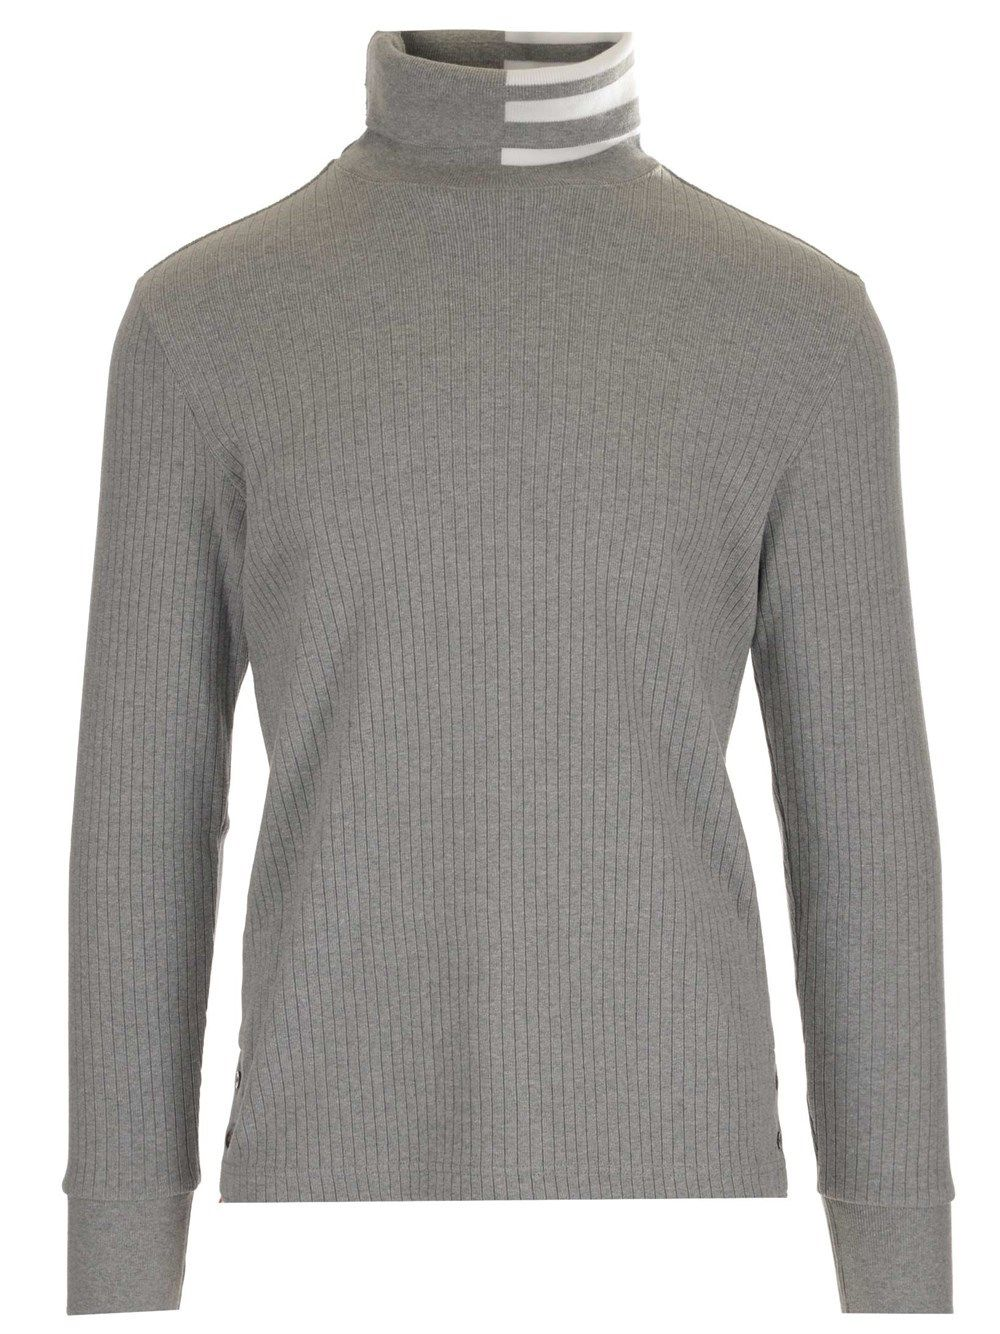 Thom Browne Cottons THOM BROWNE MEN'S MJS135A07063055 GREY OTHER MATERIALS SWEATER